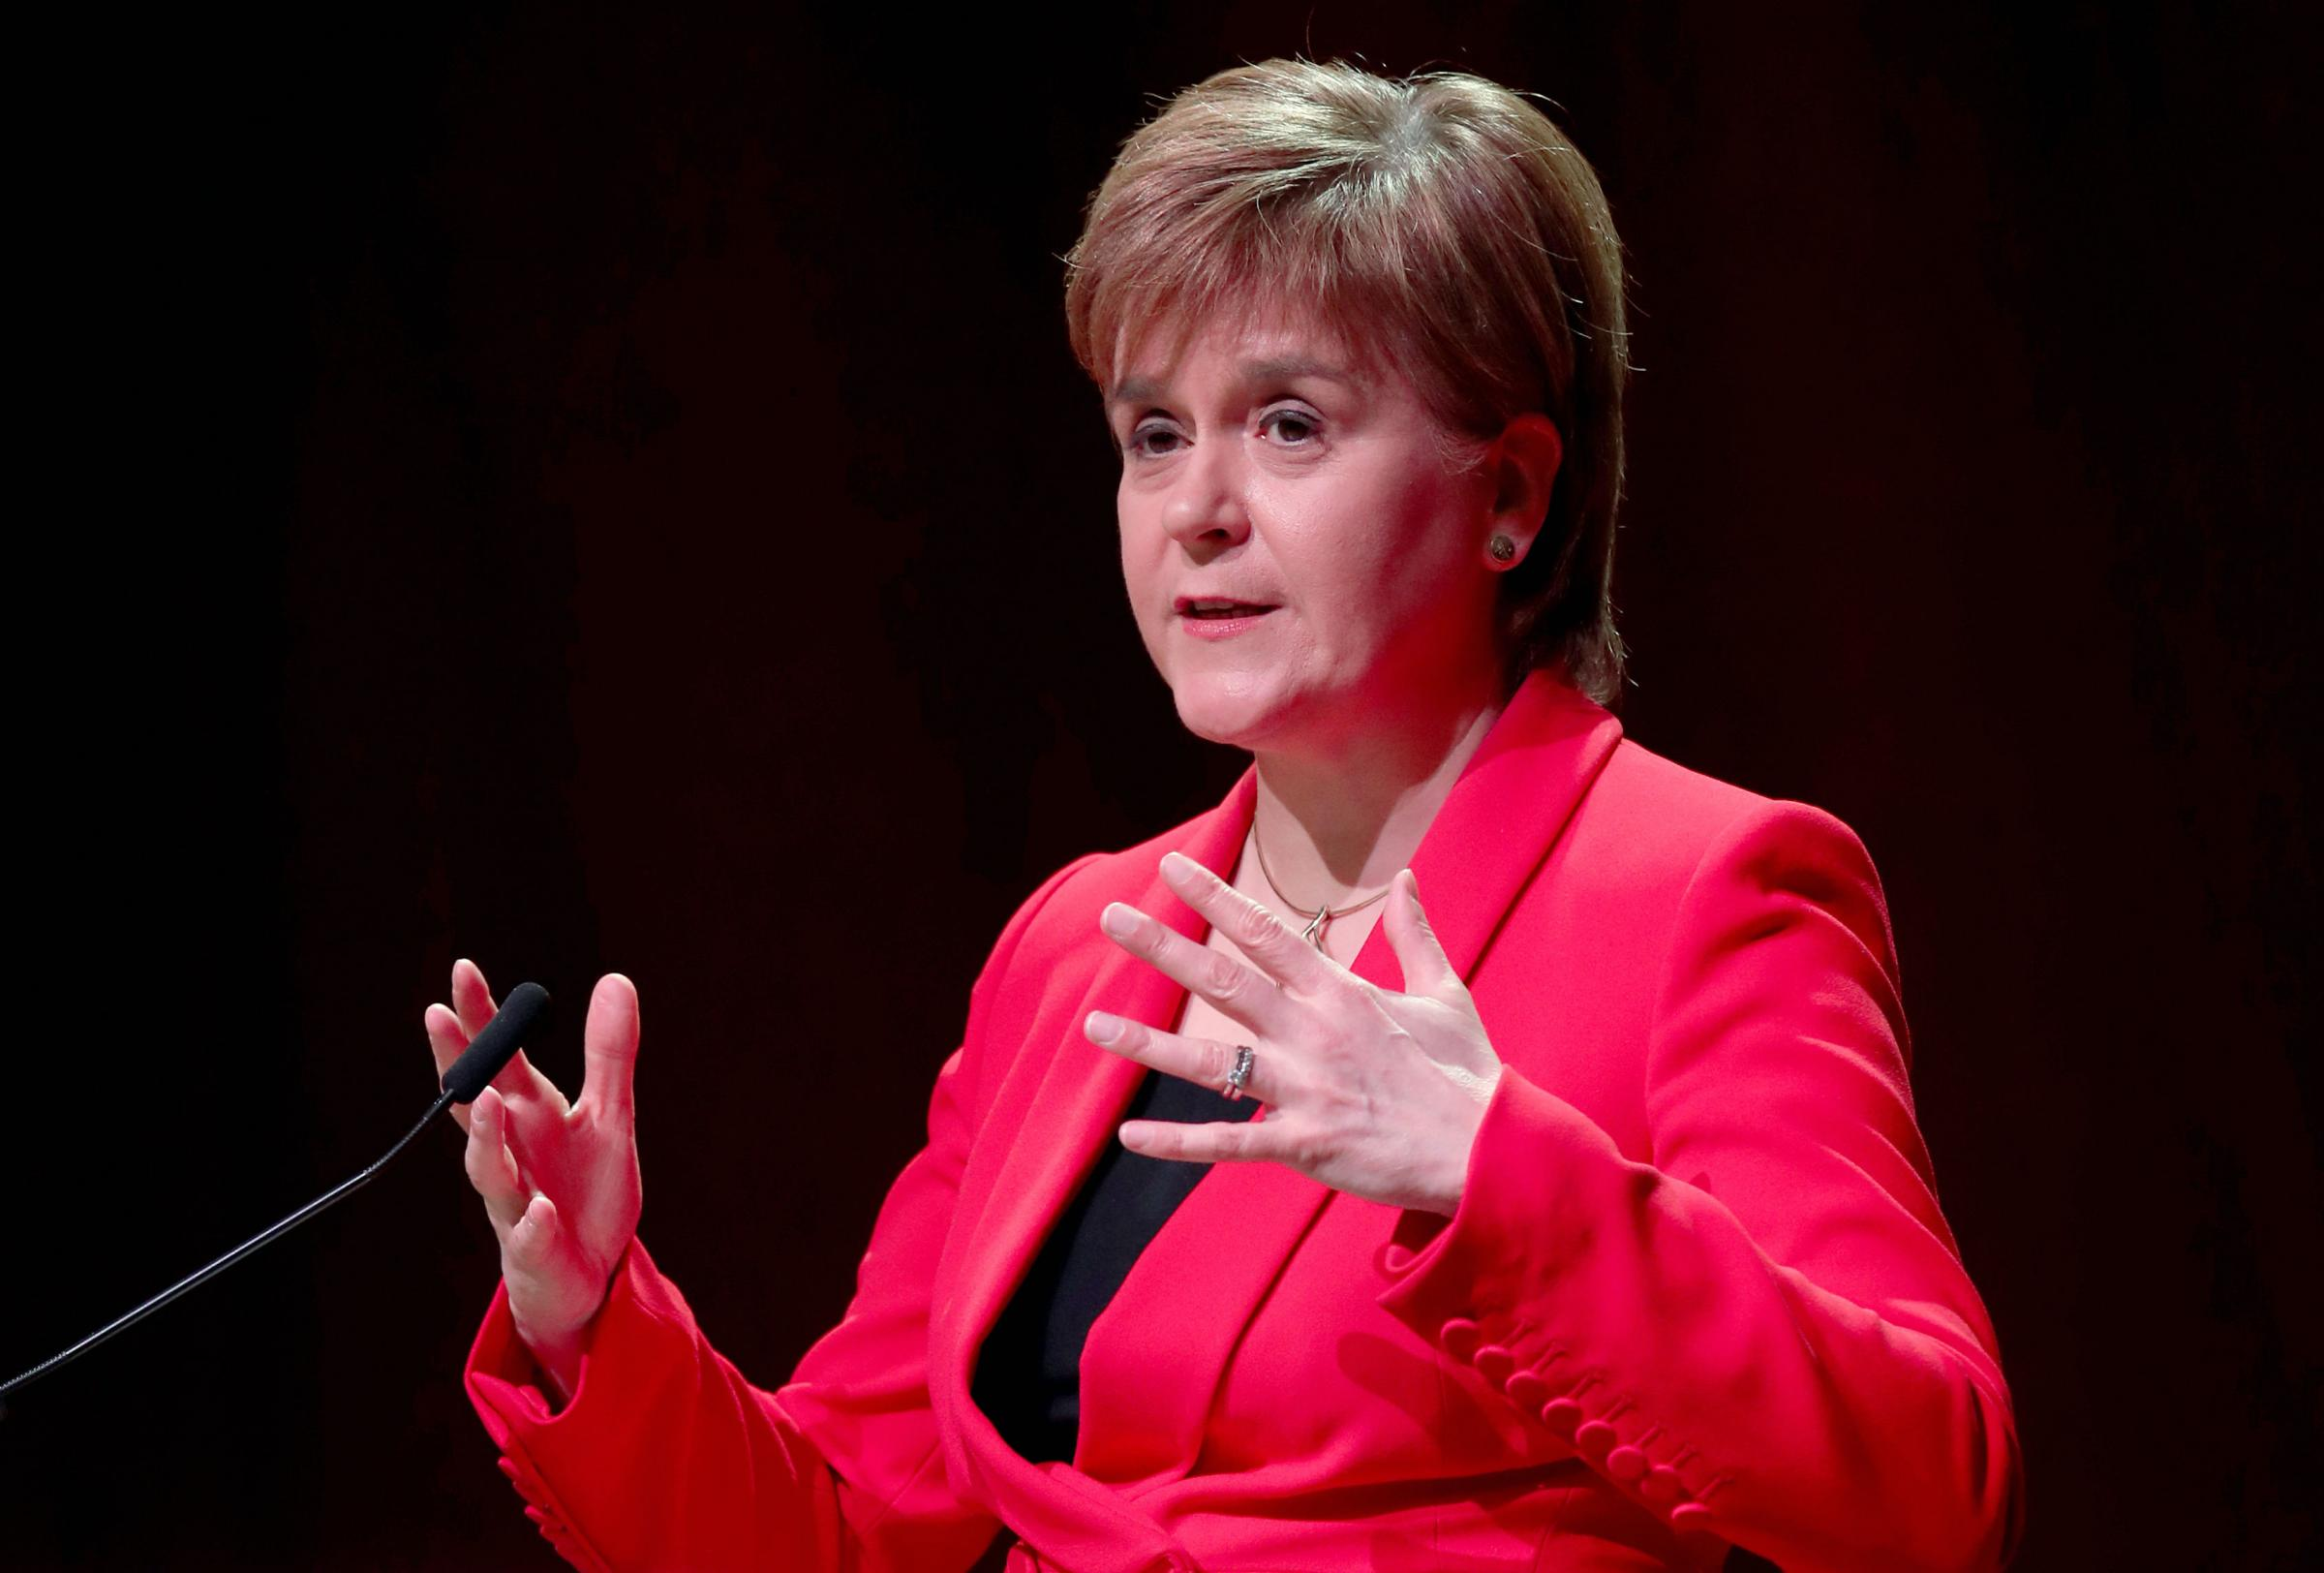 The FM is not dithering or hesitating – she is right to bide her time